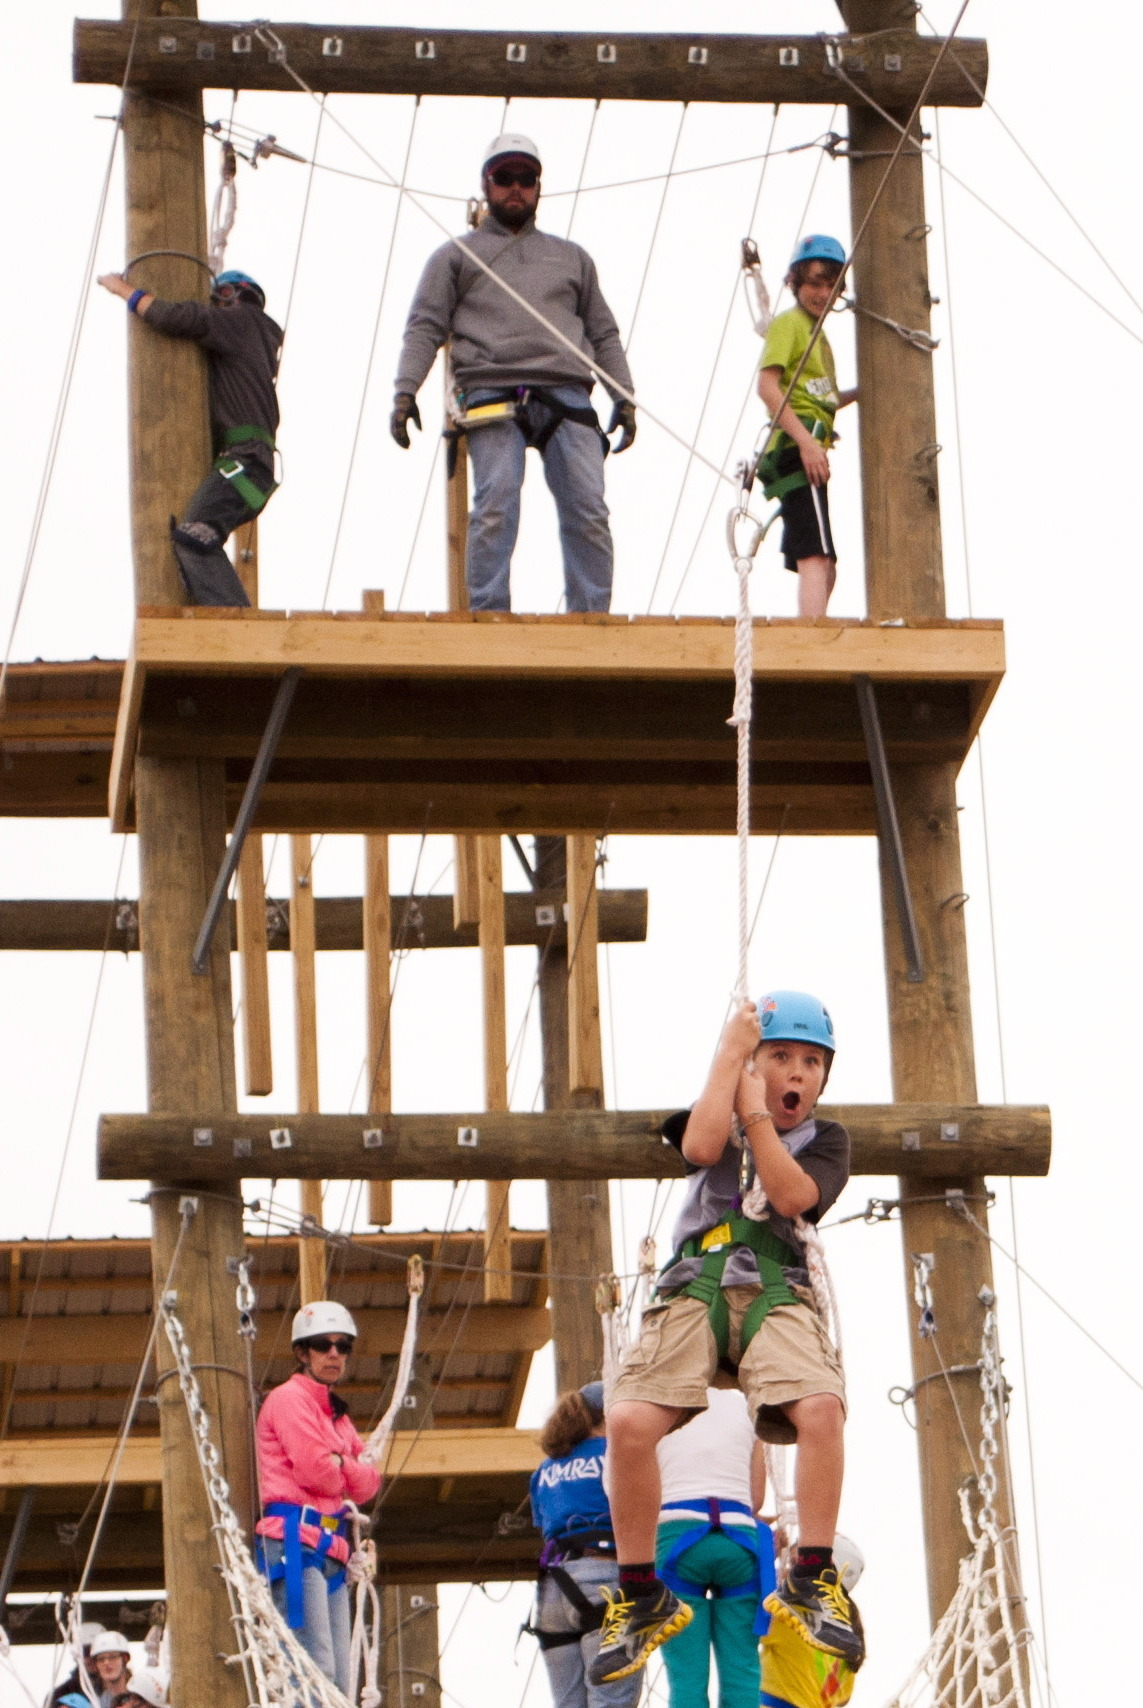 Challenge Course | St Crispin's Conference Center